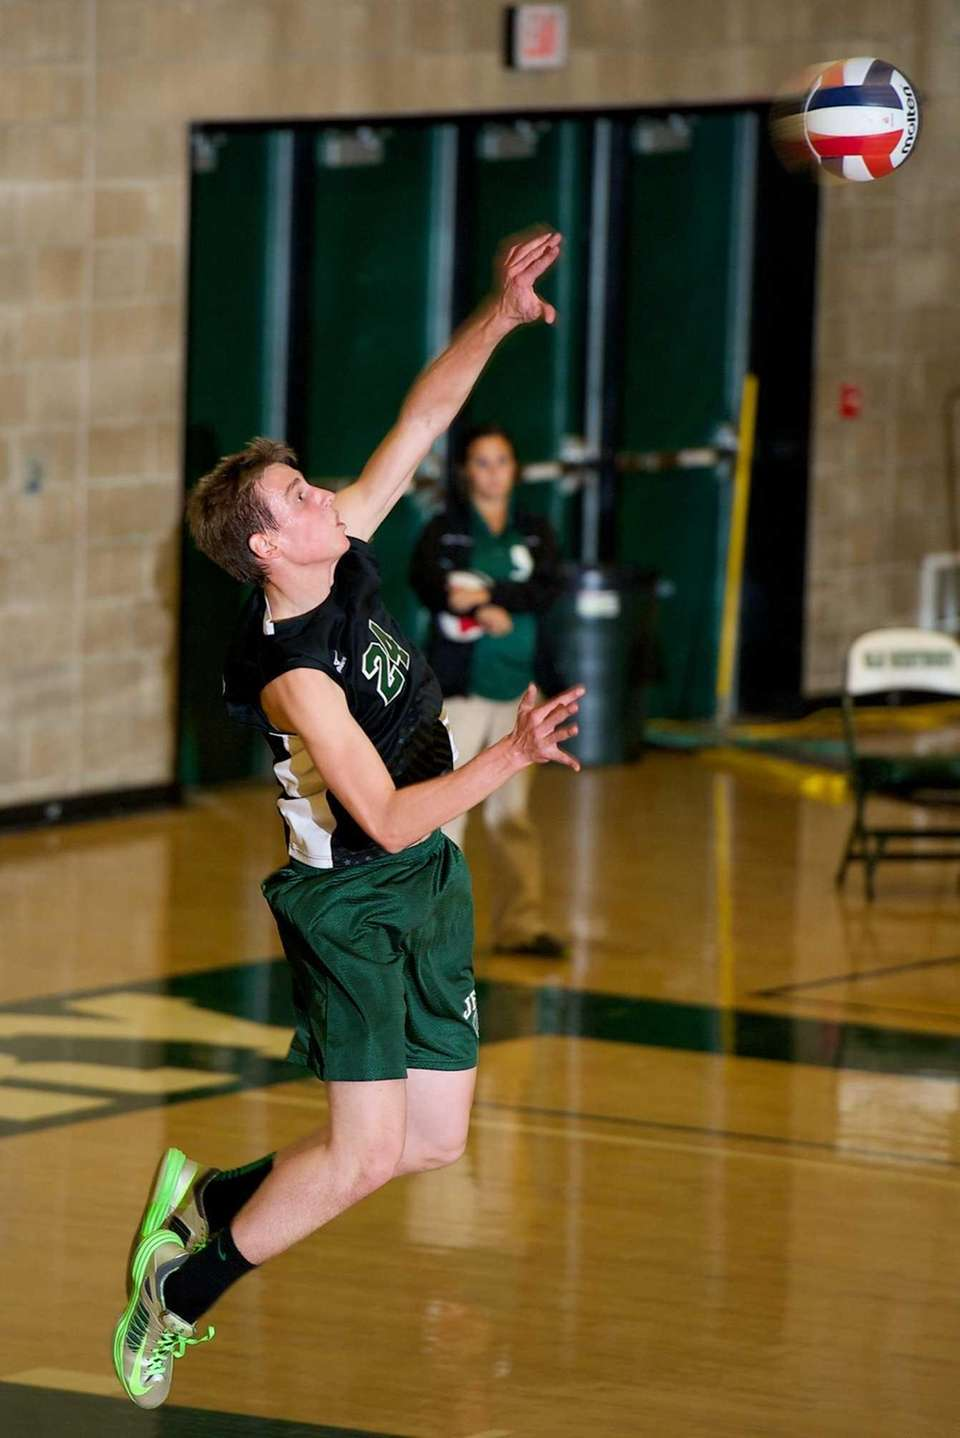 Bellmore JFK senior Gary Anderson (24) serves the